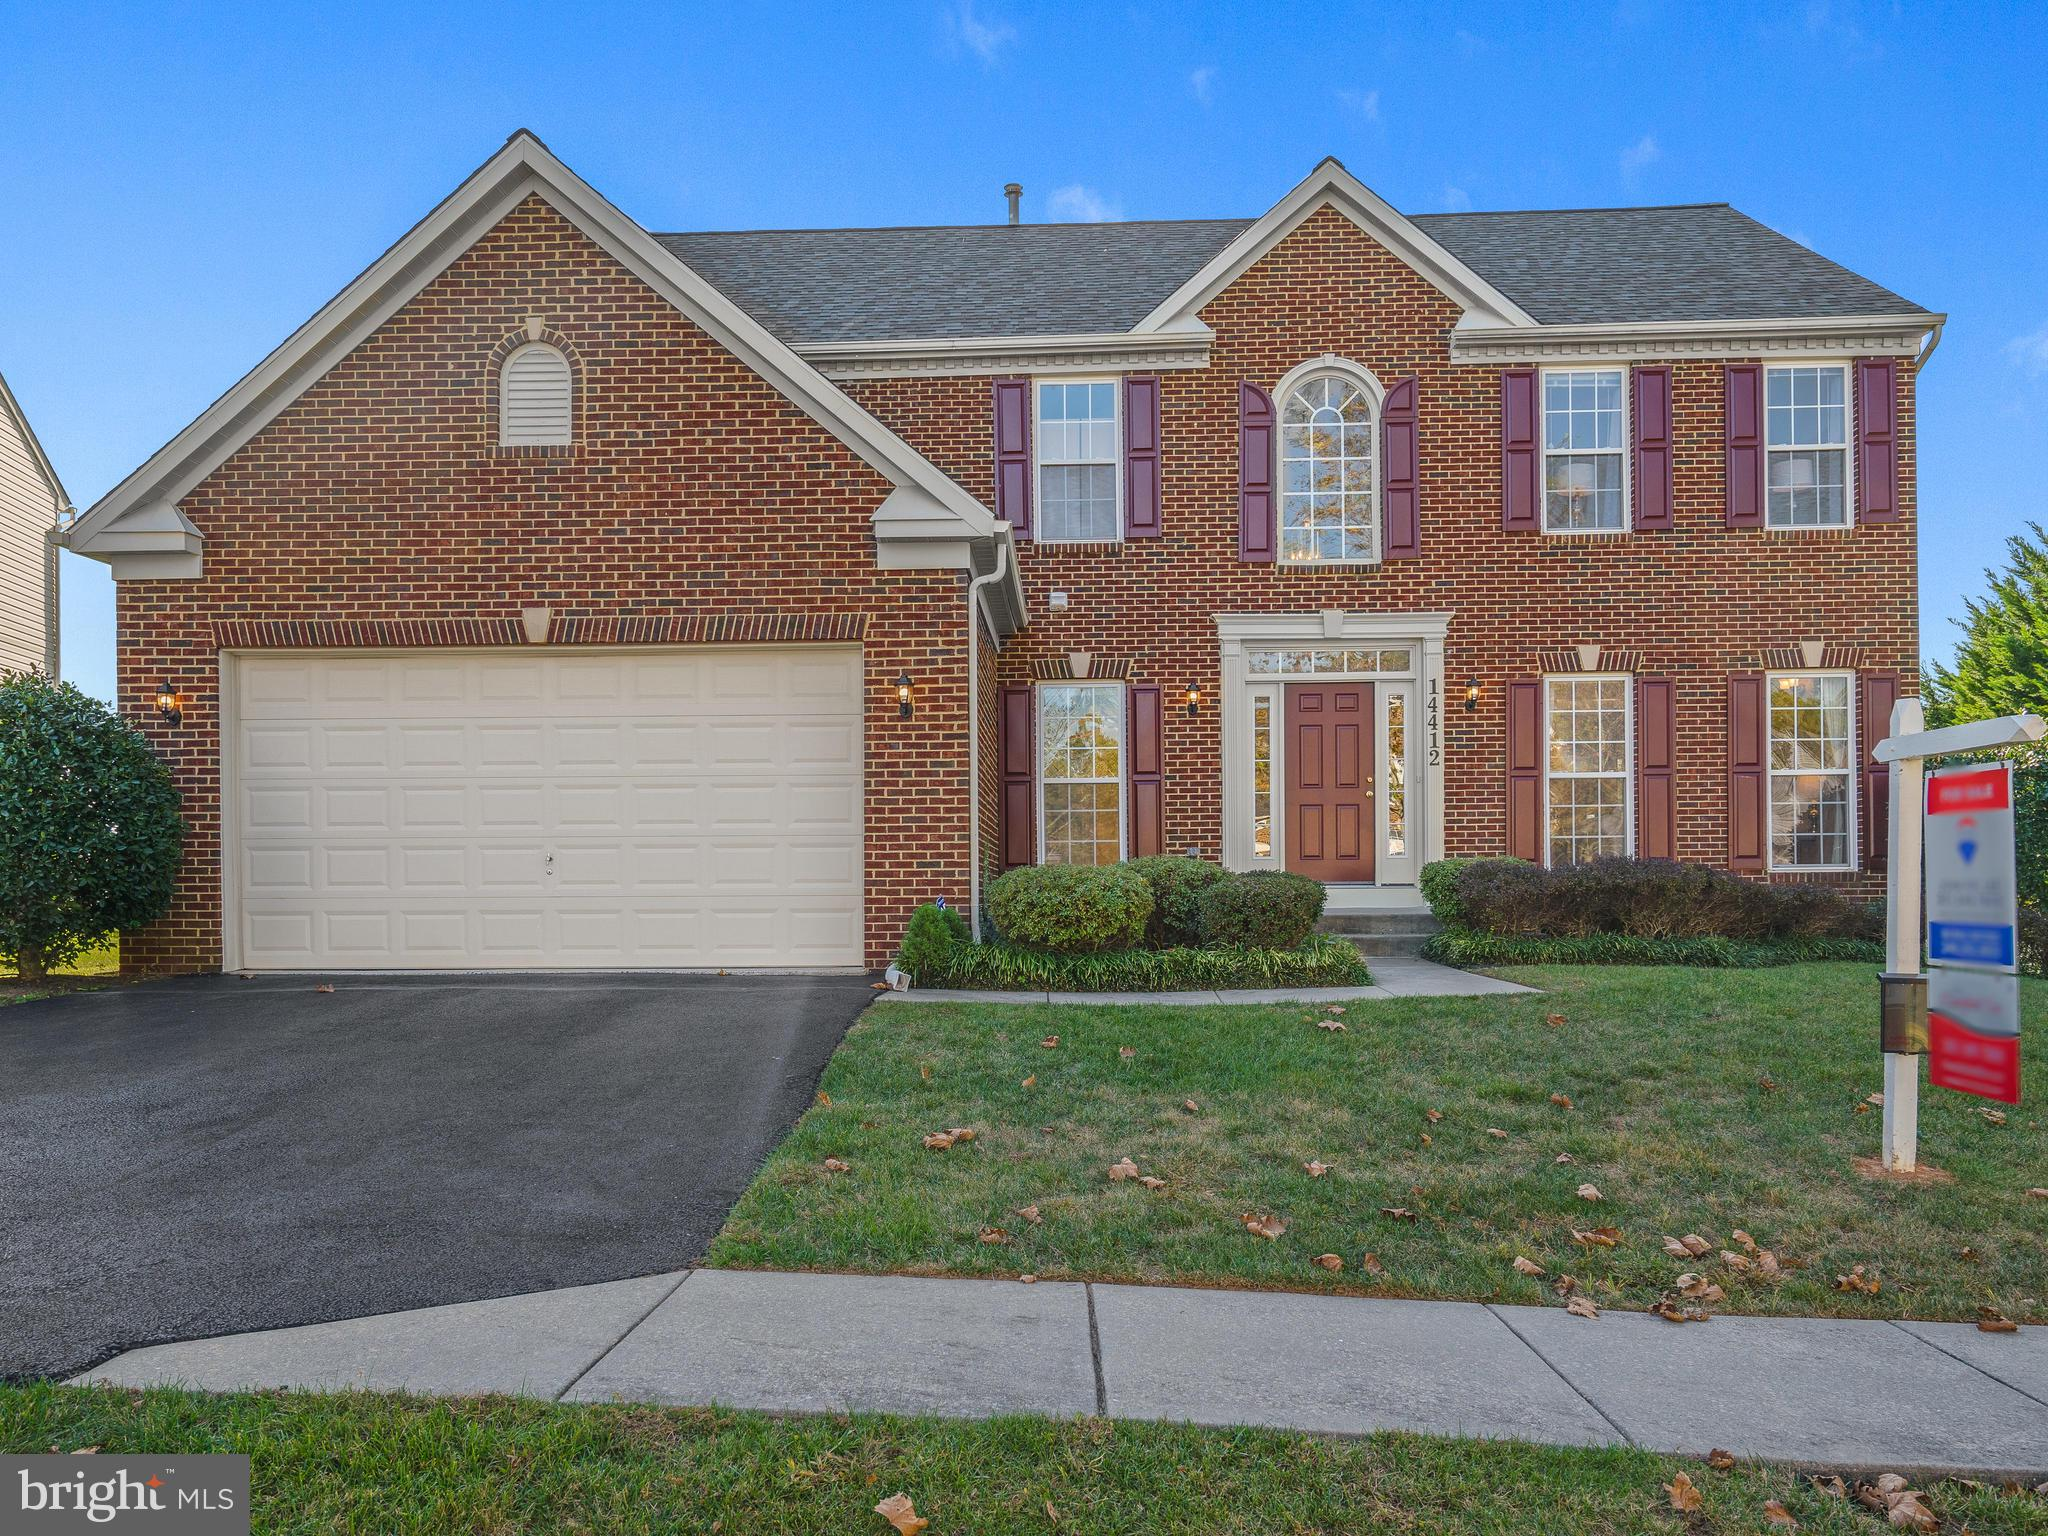 14412 AUTUMN CREST ROAD, BOYDS, MD 20841